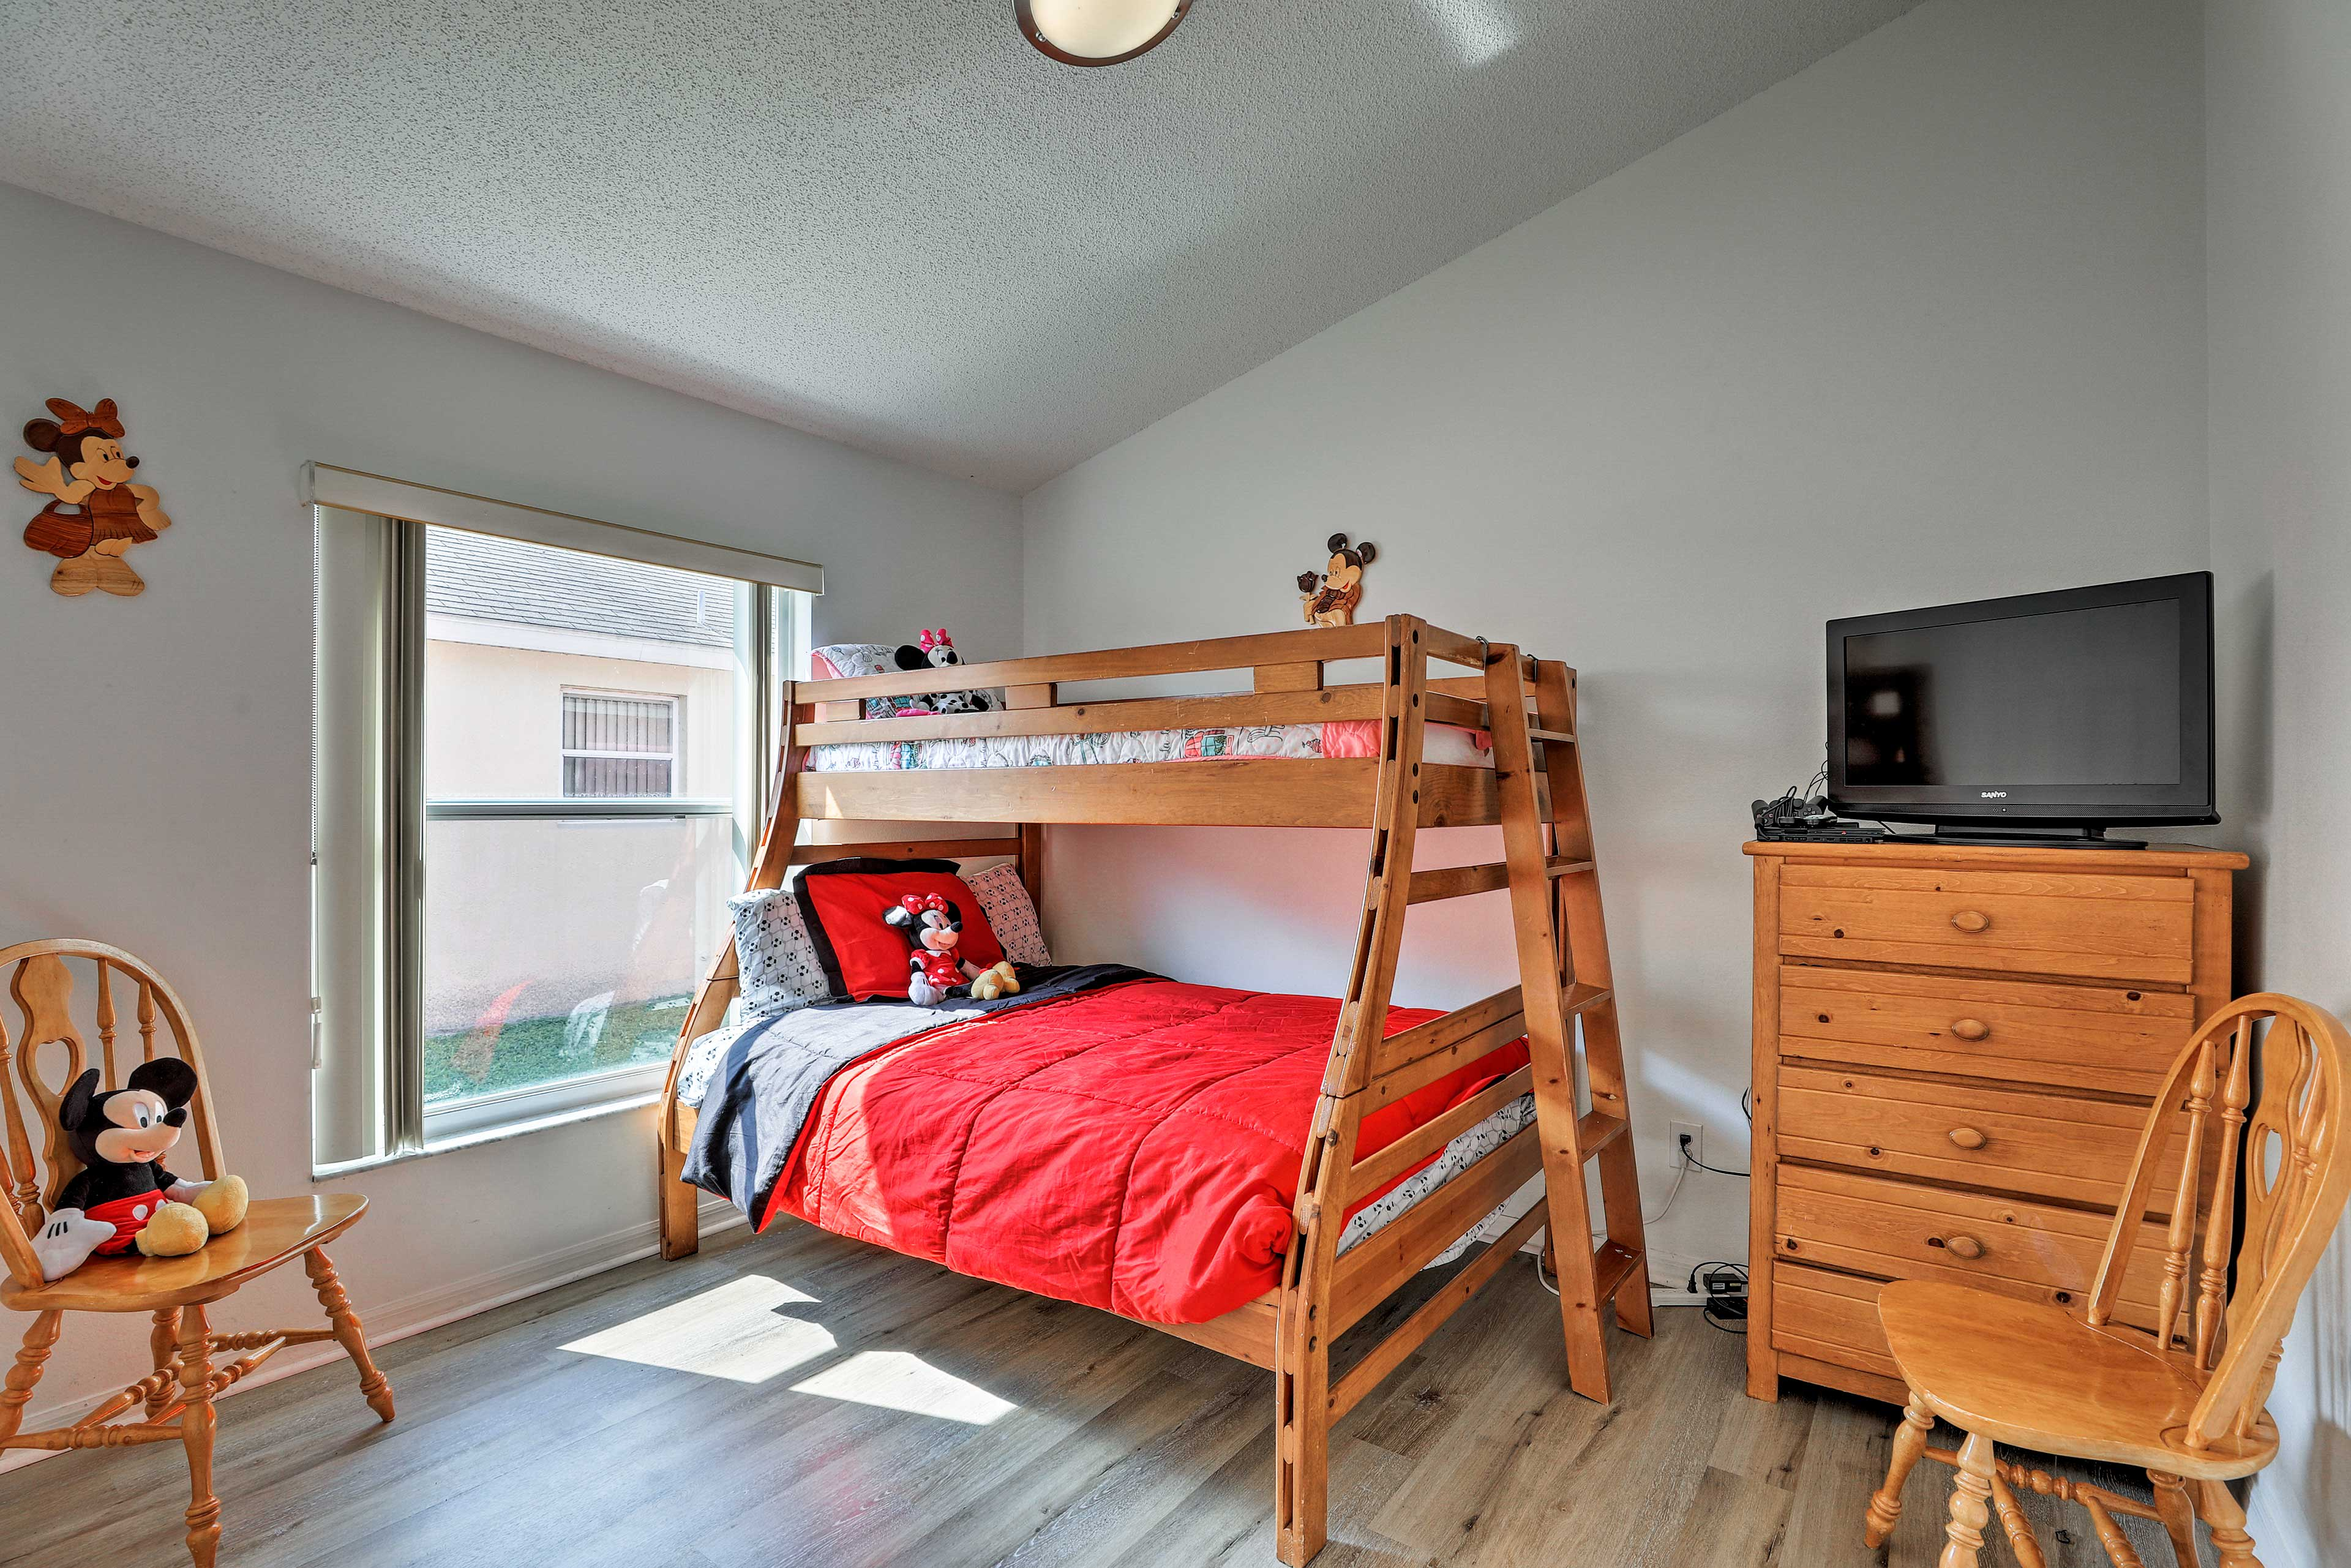 Bedroom 4 features a comfortable twin/full bunk bed!